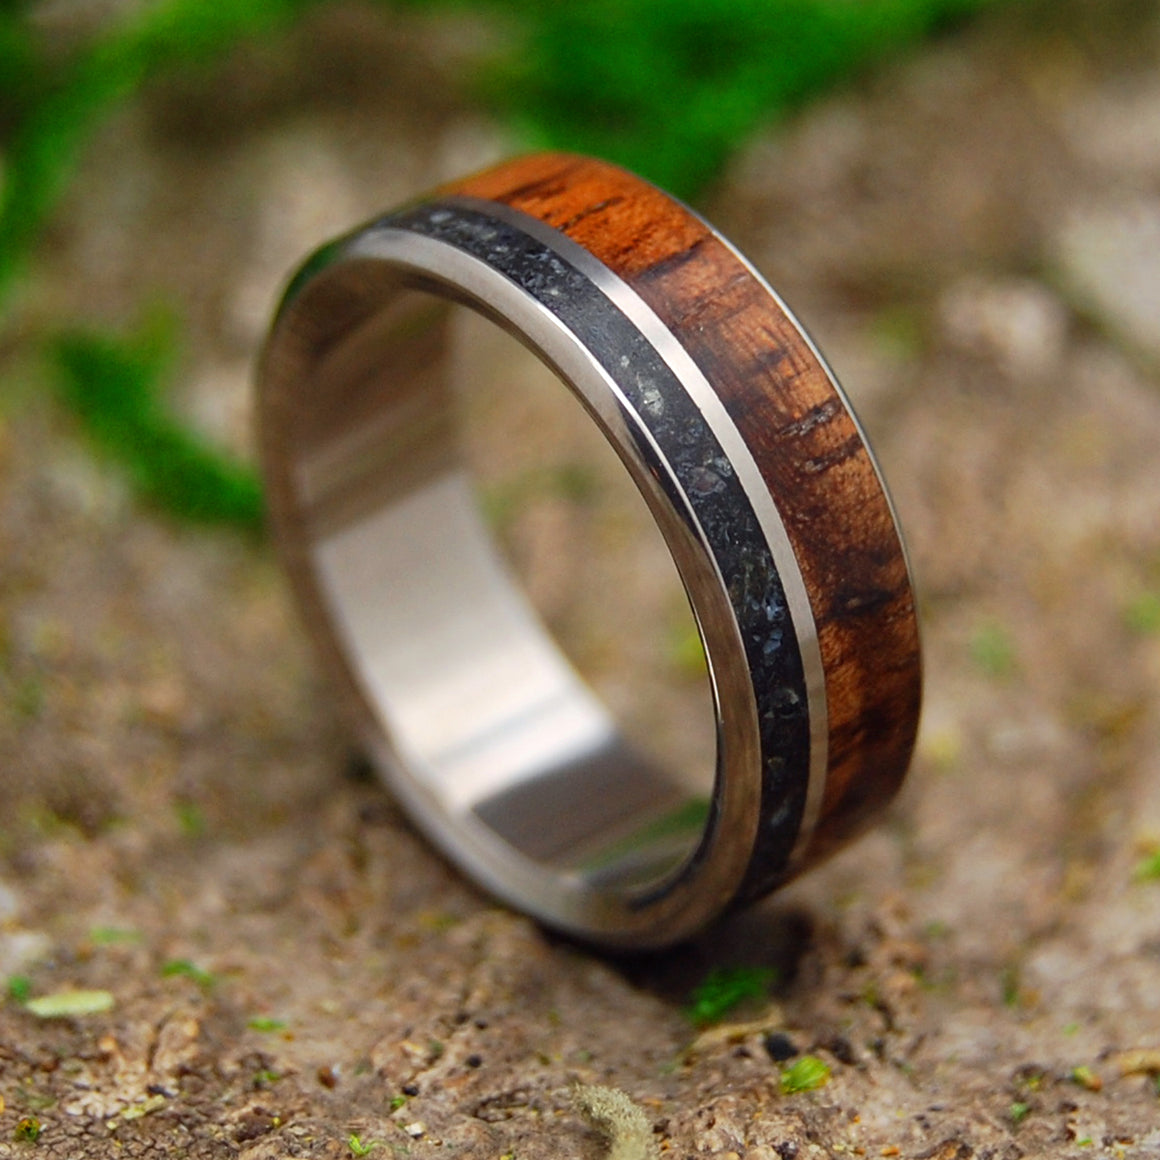 Black Wedding Ring - Mens Ring | ICELANDIC SAND AND HAWAIIAN KOA WOOD II - Minter and Richter Designs